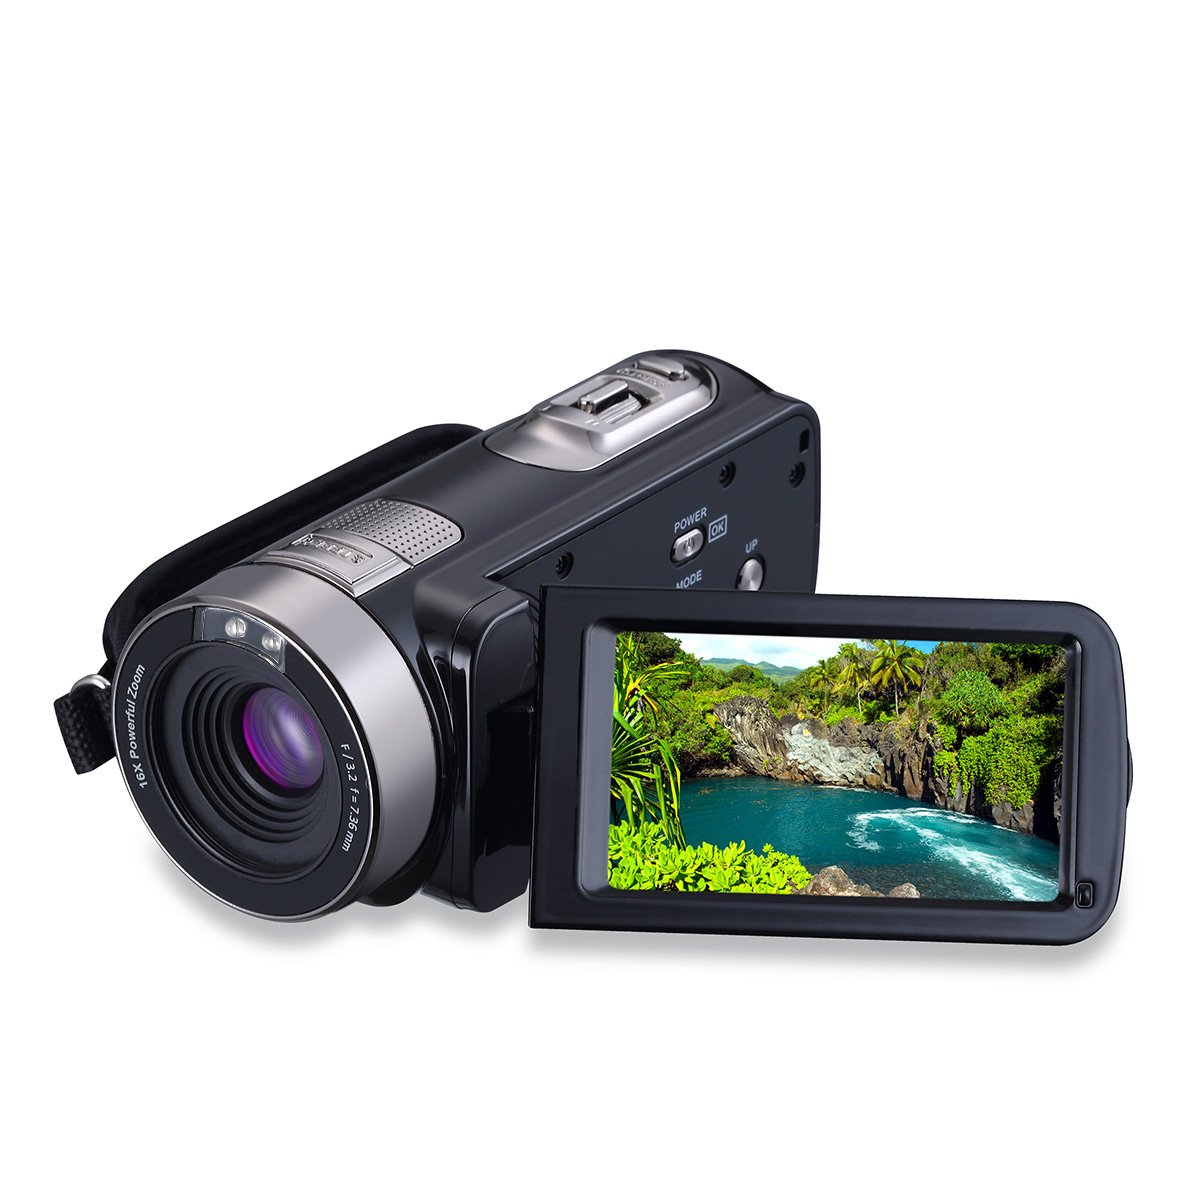 Konesky Camcorder FHD 1080P 24MP Camera with 16X Digital Zoom Remote Control Mass Storage with 3.0'' LCD Screen